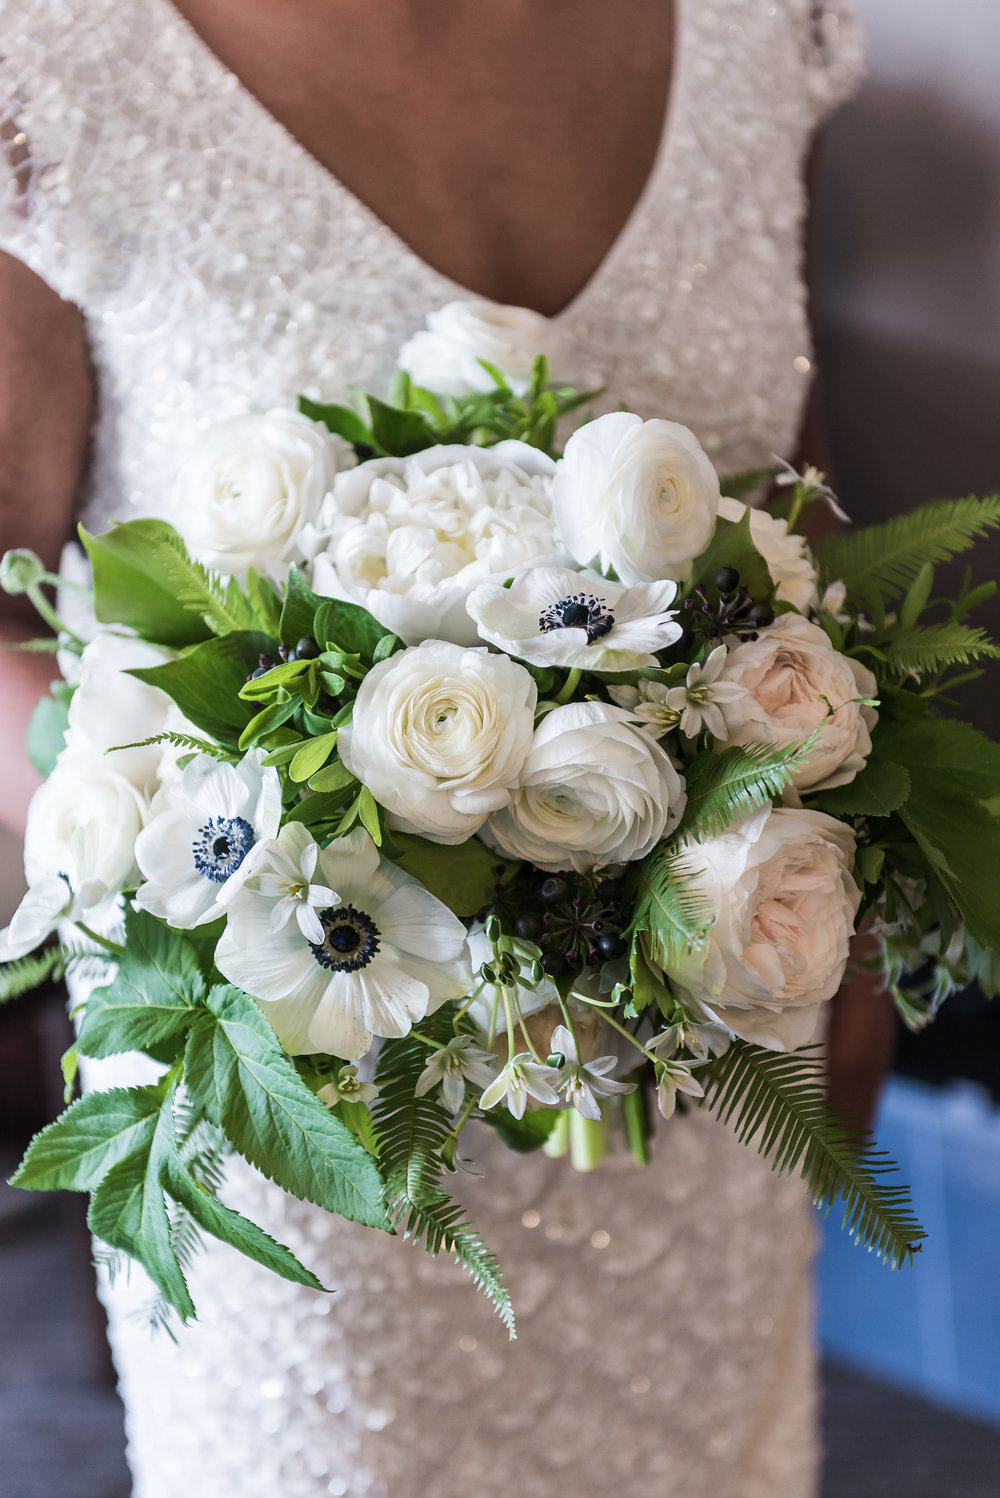 White and Green Wedding Bouquet with Ranunculus, Anemone and Peonies